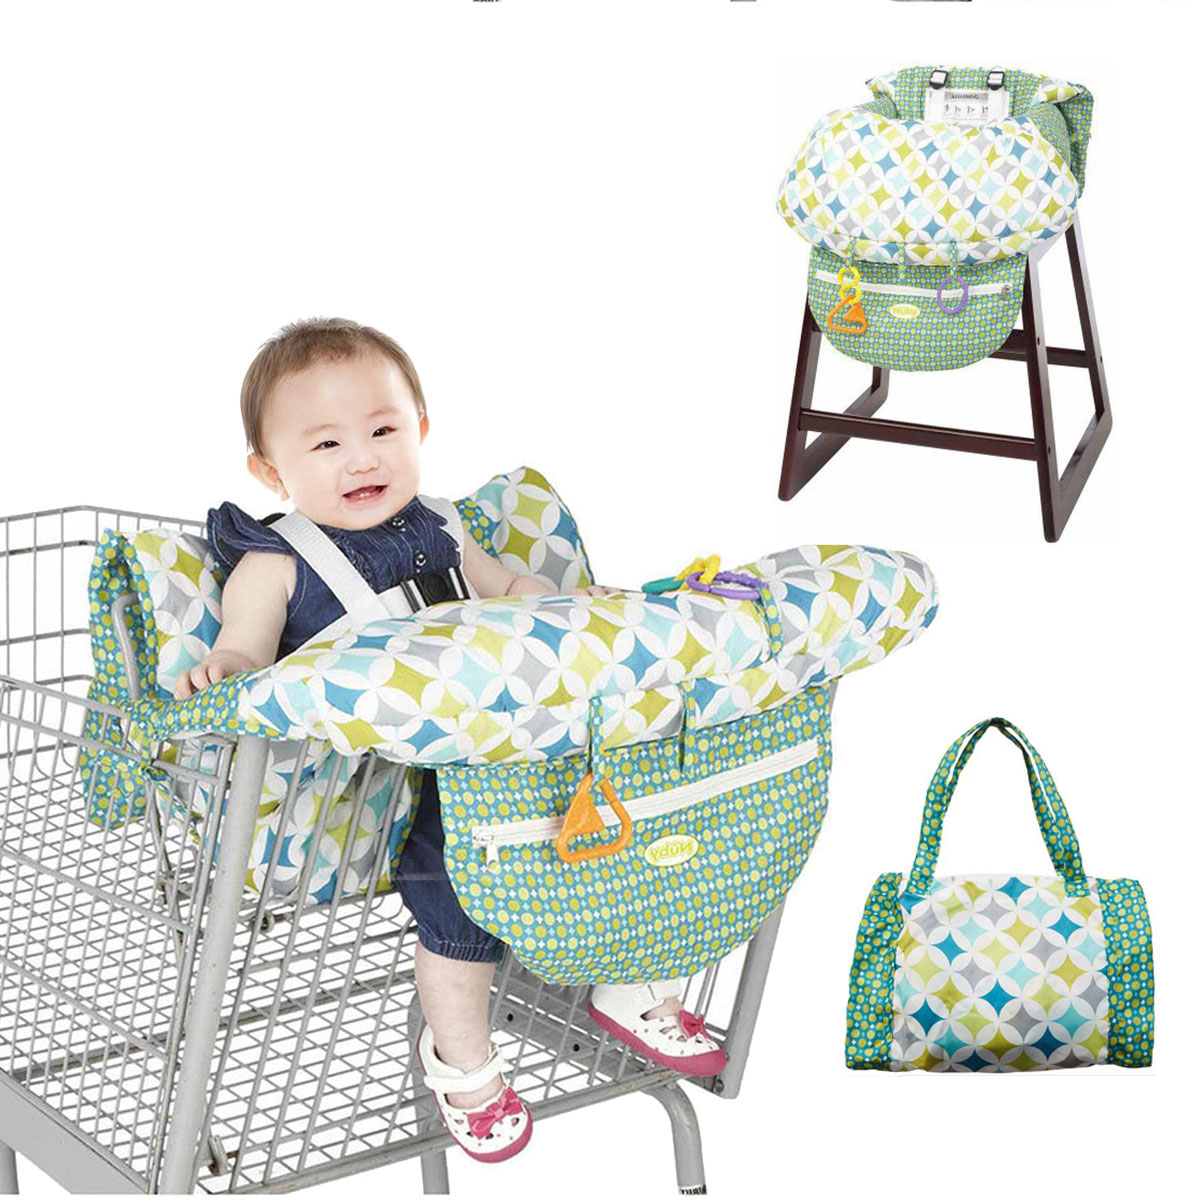 Baby Shopping Cart Cover Multifunctional Folding Baby Shopping Push Cart Protection High Chair Cover Safety Seats For Kids